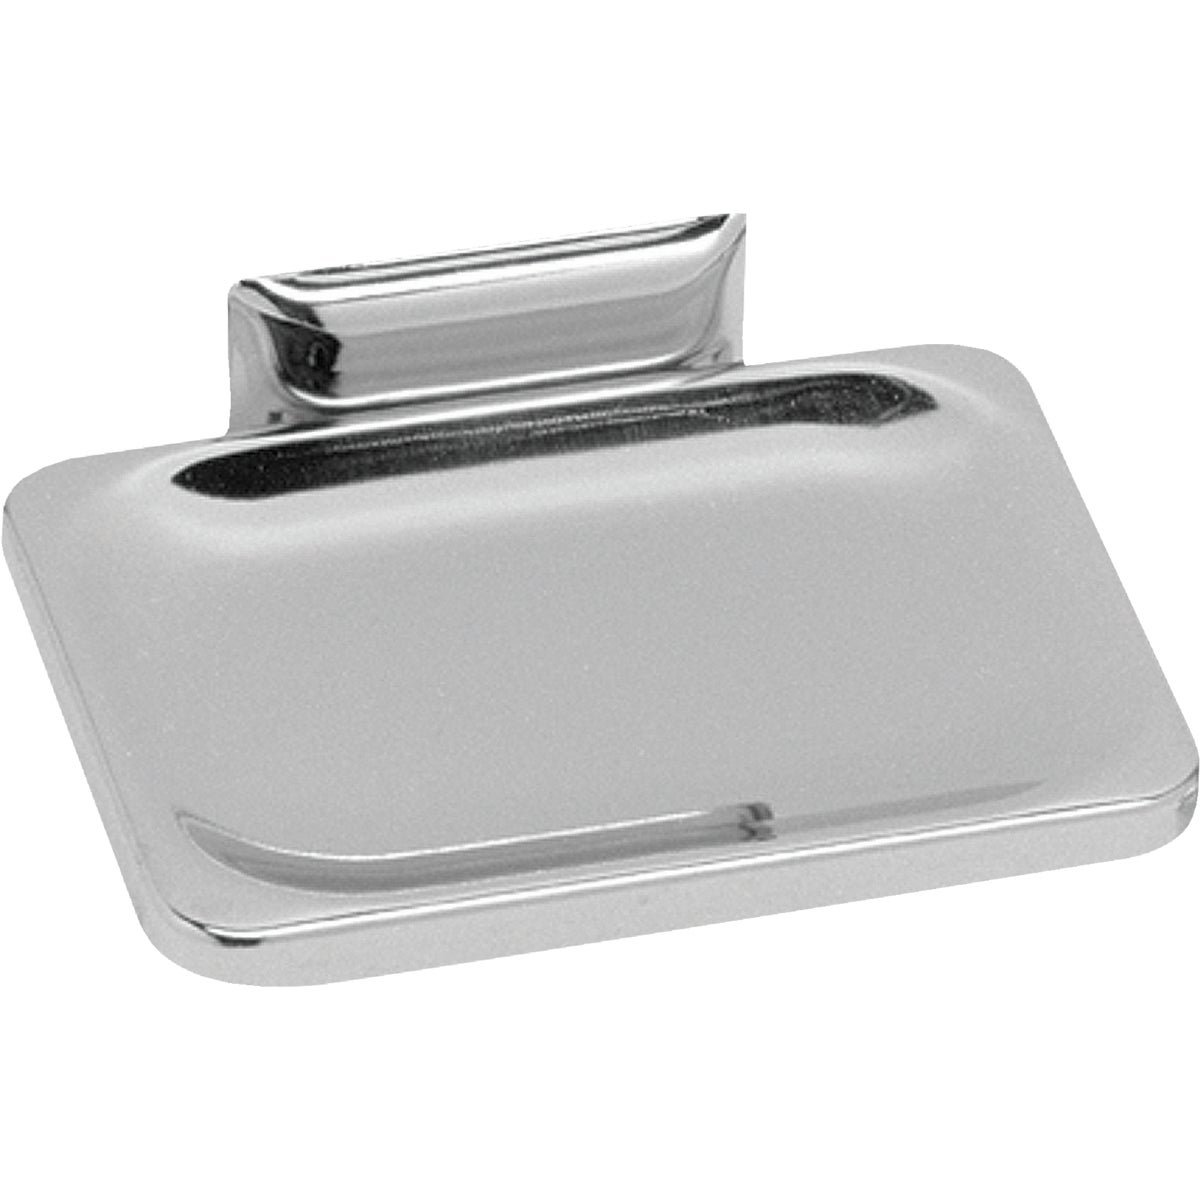 CHR WALL MOUNT SOAP DISH - 38000 by Decko Bath